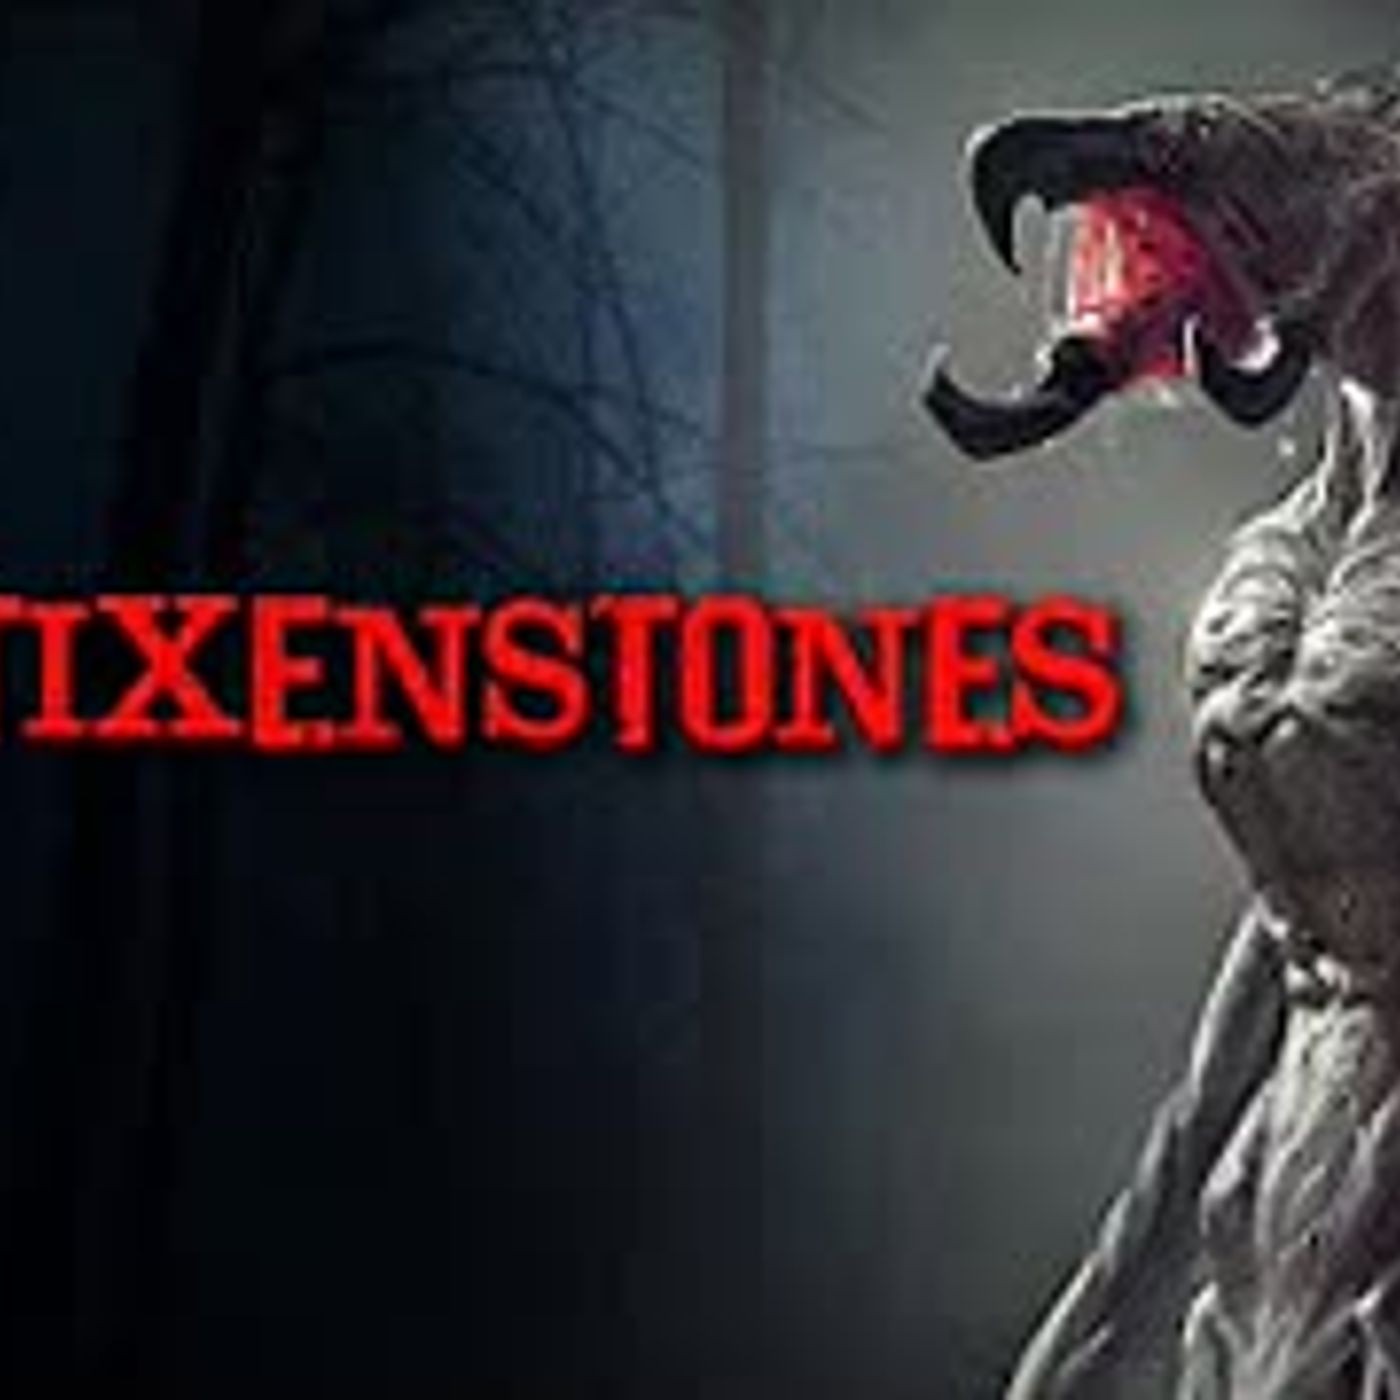 """Mr. Stixenstones"" Creepypasta"